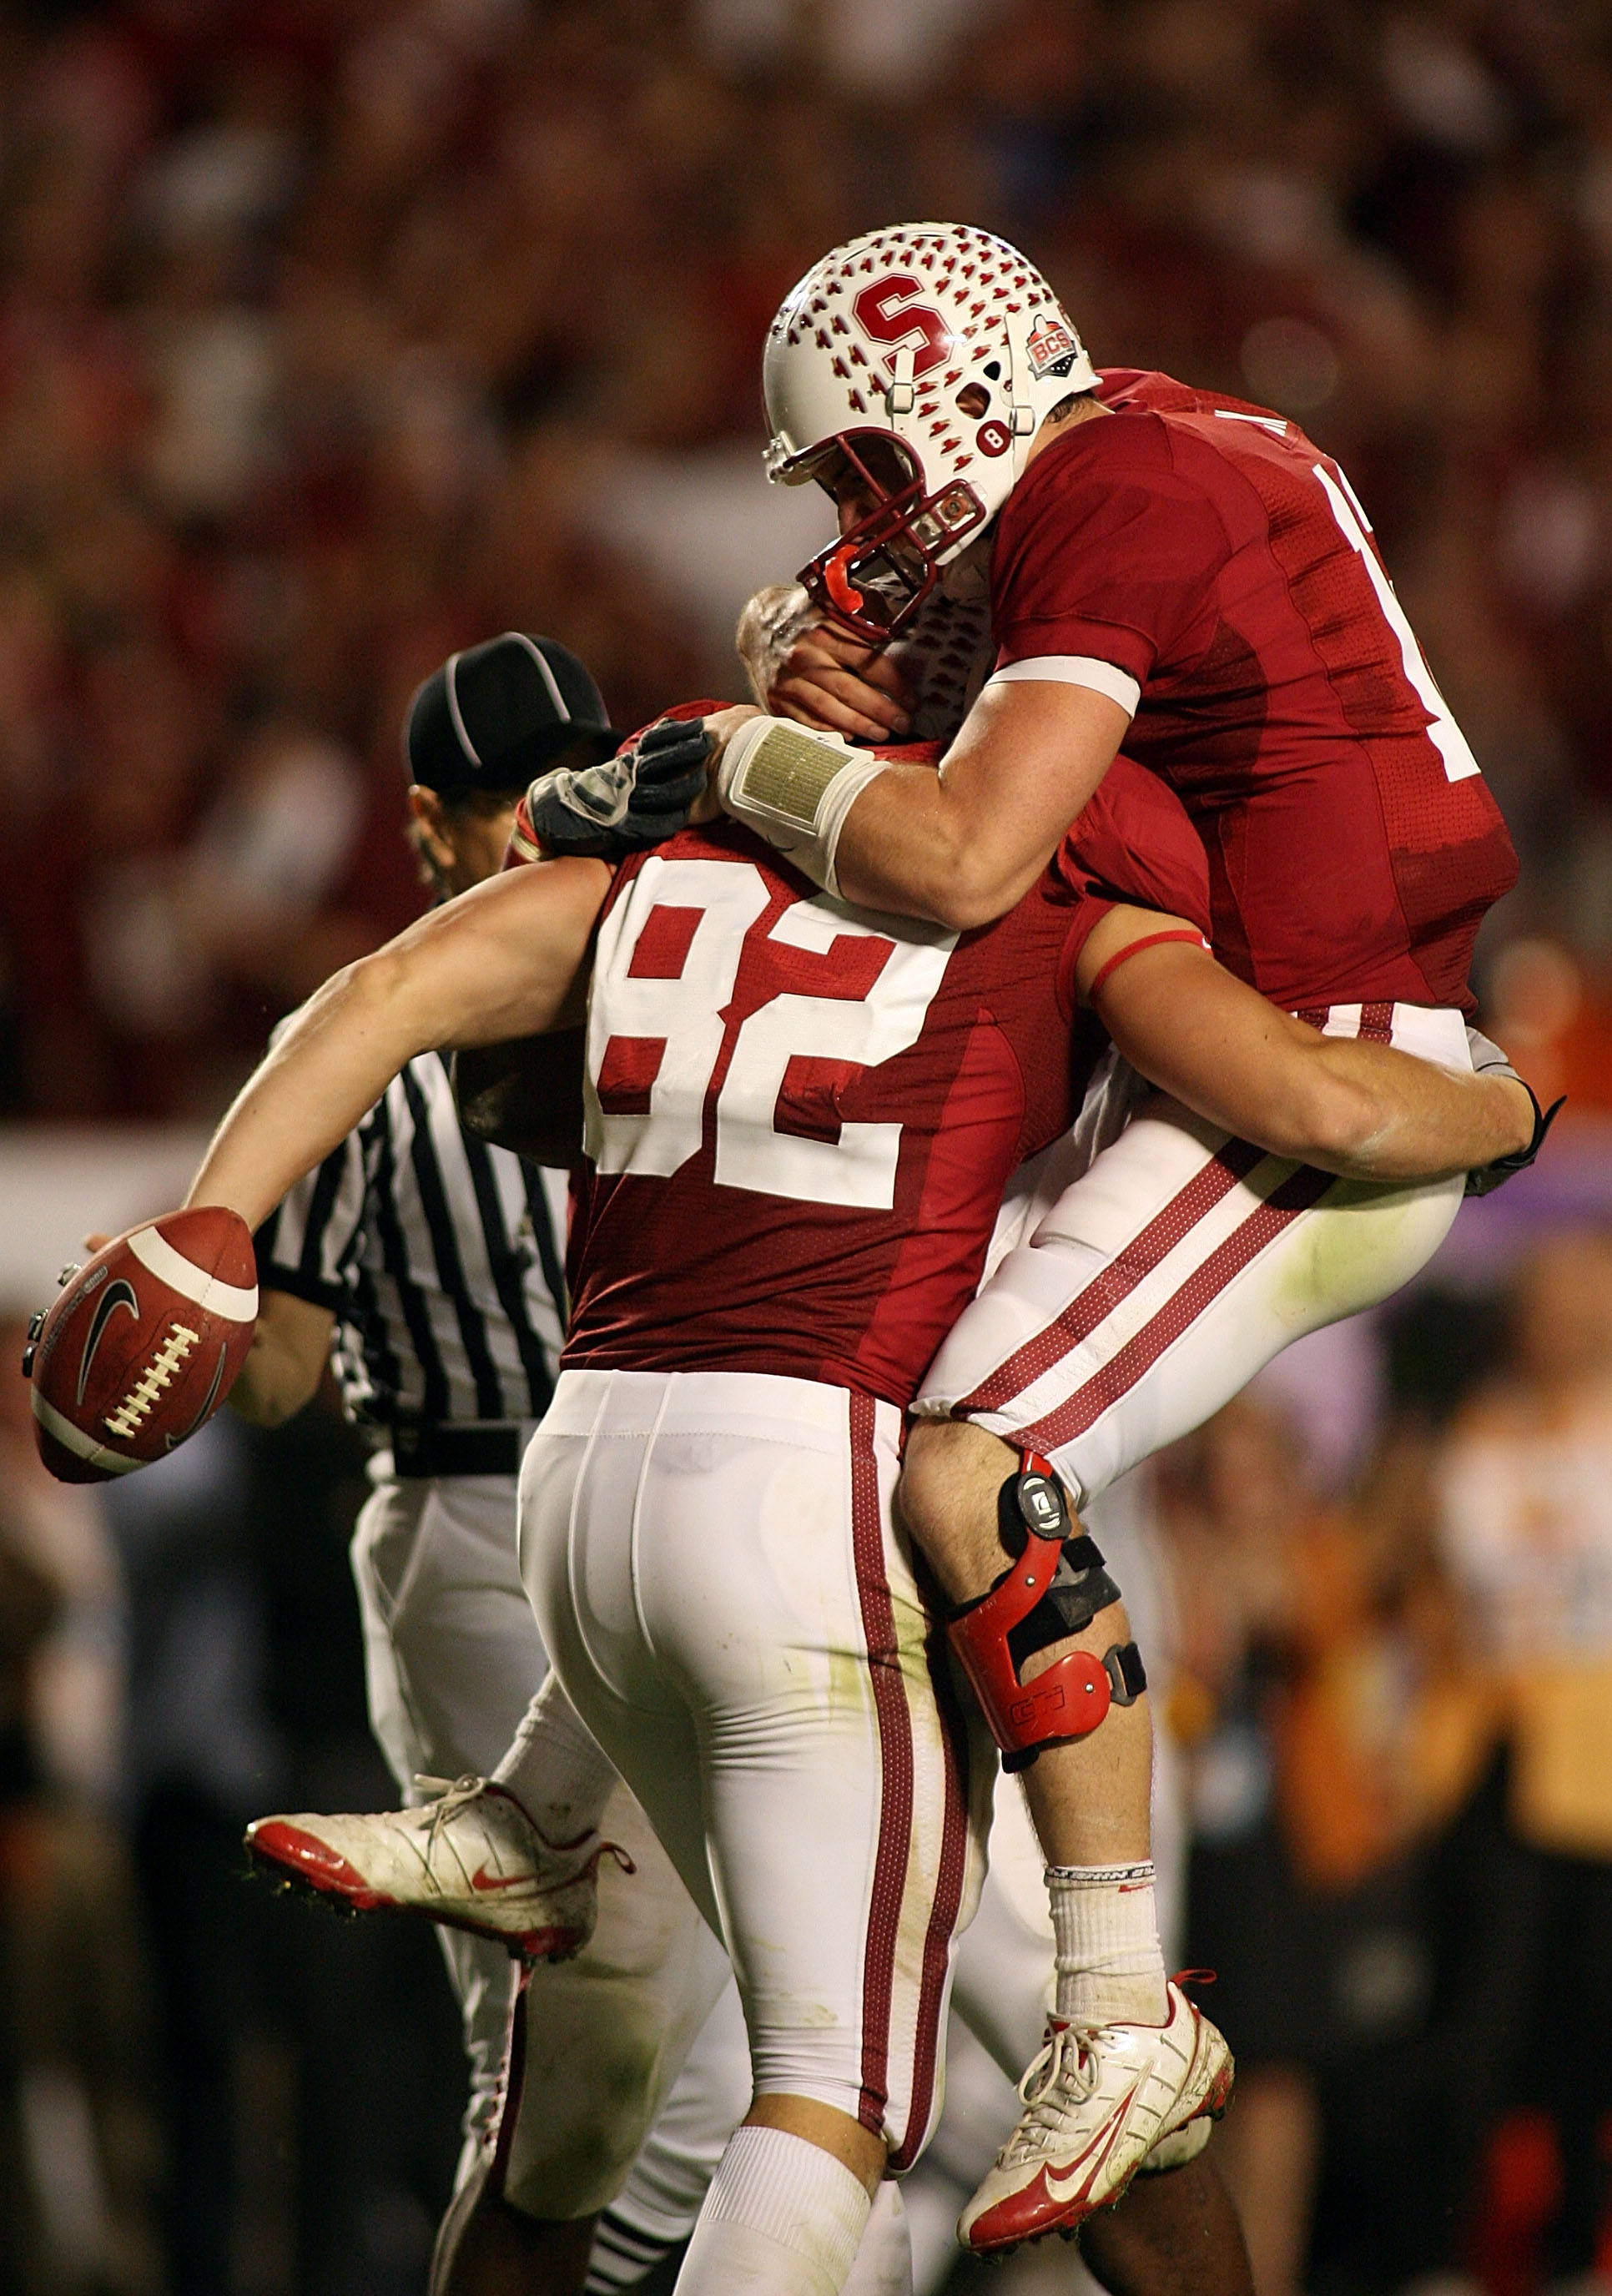 MIAMI, FL - JANUARY 03: Quarterback Andrew Luck #12 and Colby Fleener #82 of the Stanford Cardinal celebrate after Luck threw Fleener a 41-yard touchdown pass in the third quarterback against the Virginia Tech Hokies during the 2011 Discover Orange Bowl a